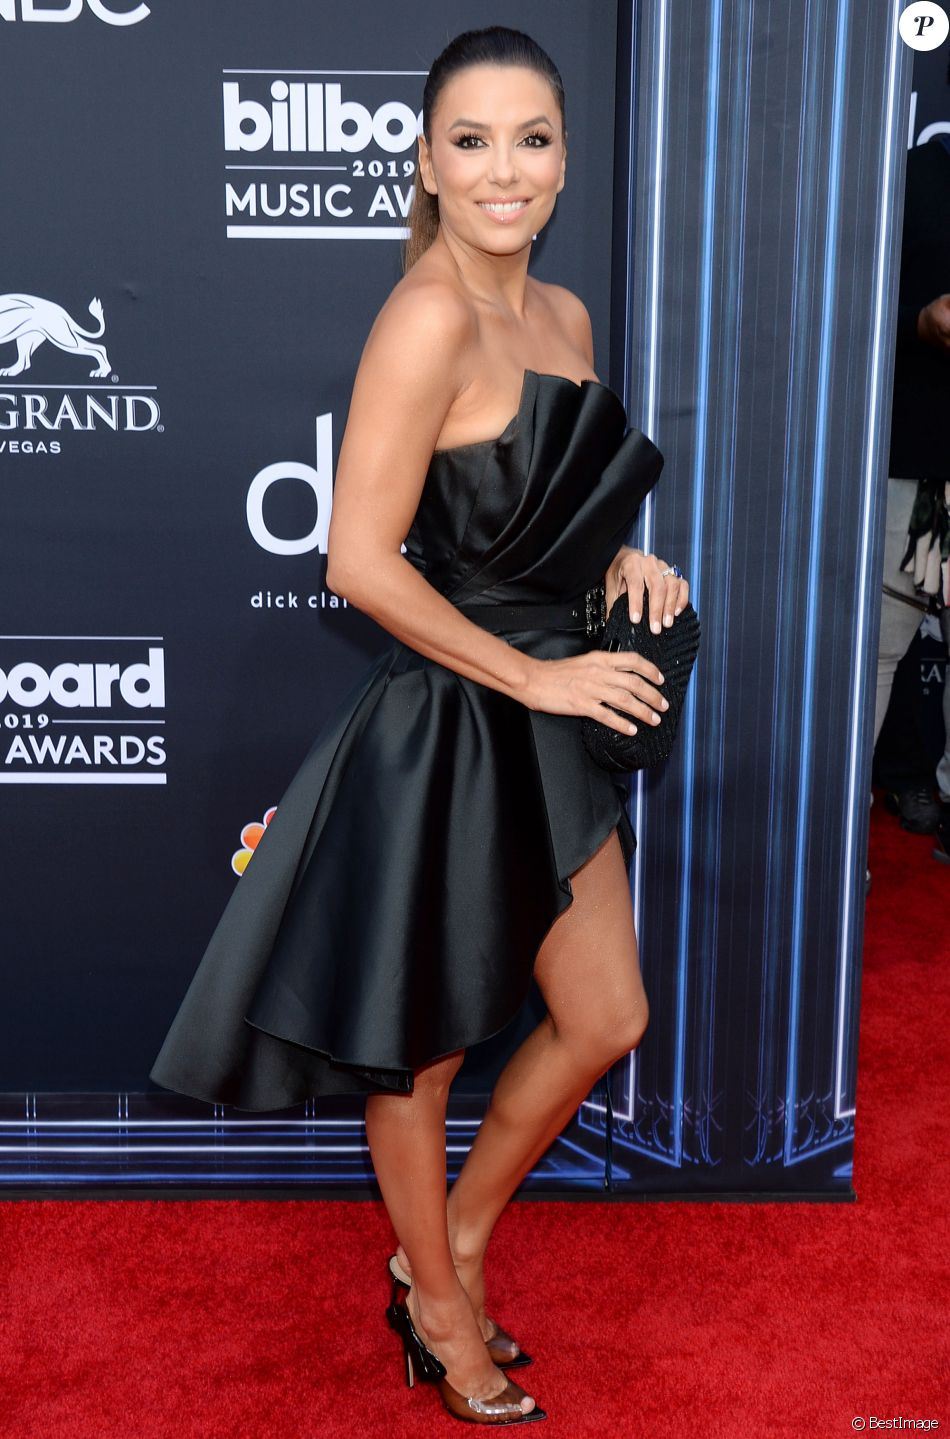 "Eva Longoria au photocall des ""2019 Billboards Music Awards"" au MGM Grand Garden Arena à Las Vegas, le 1er mai 2019.  Celebrities at the photocall of ""2019 Billboards Music Awards"" at the MGM Grand Garden Arena in Las Vegas. May 1st, 2019.01/05/2019 - Las Vegas"